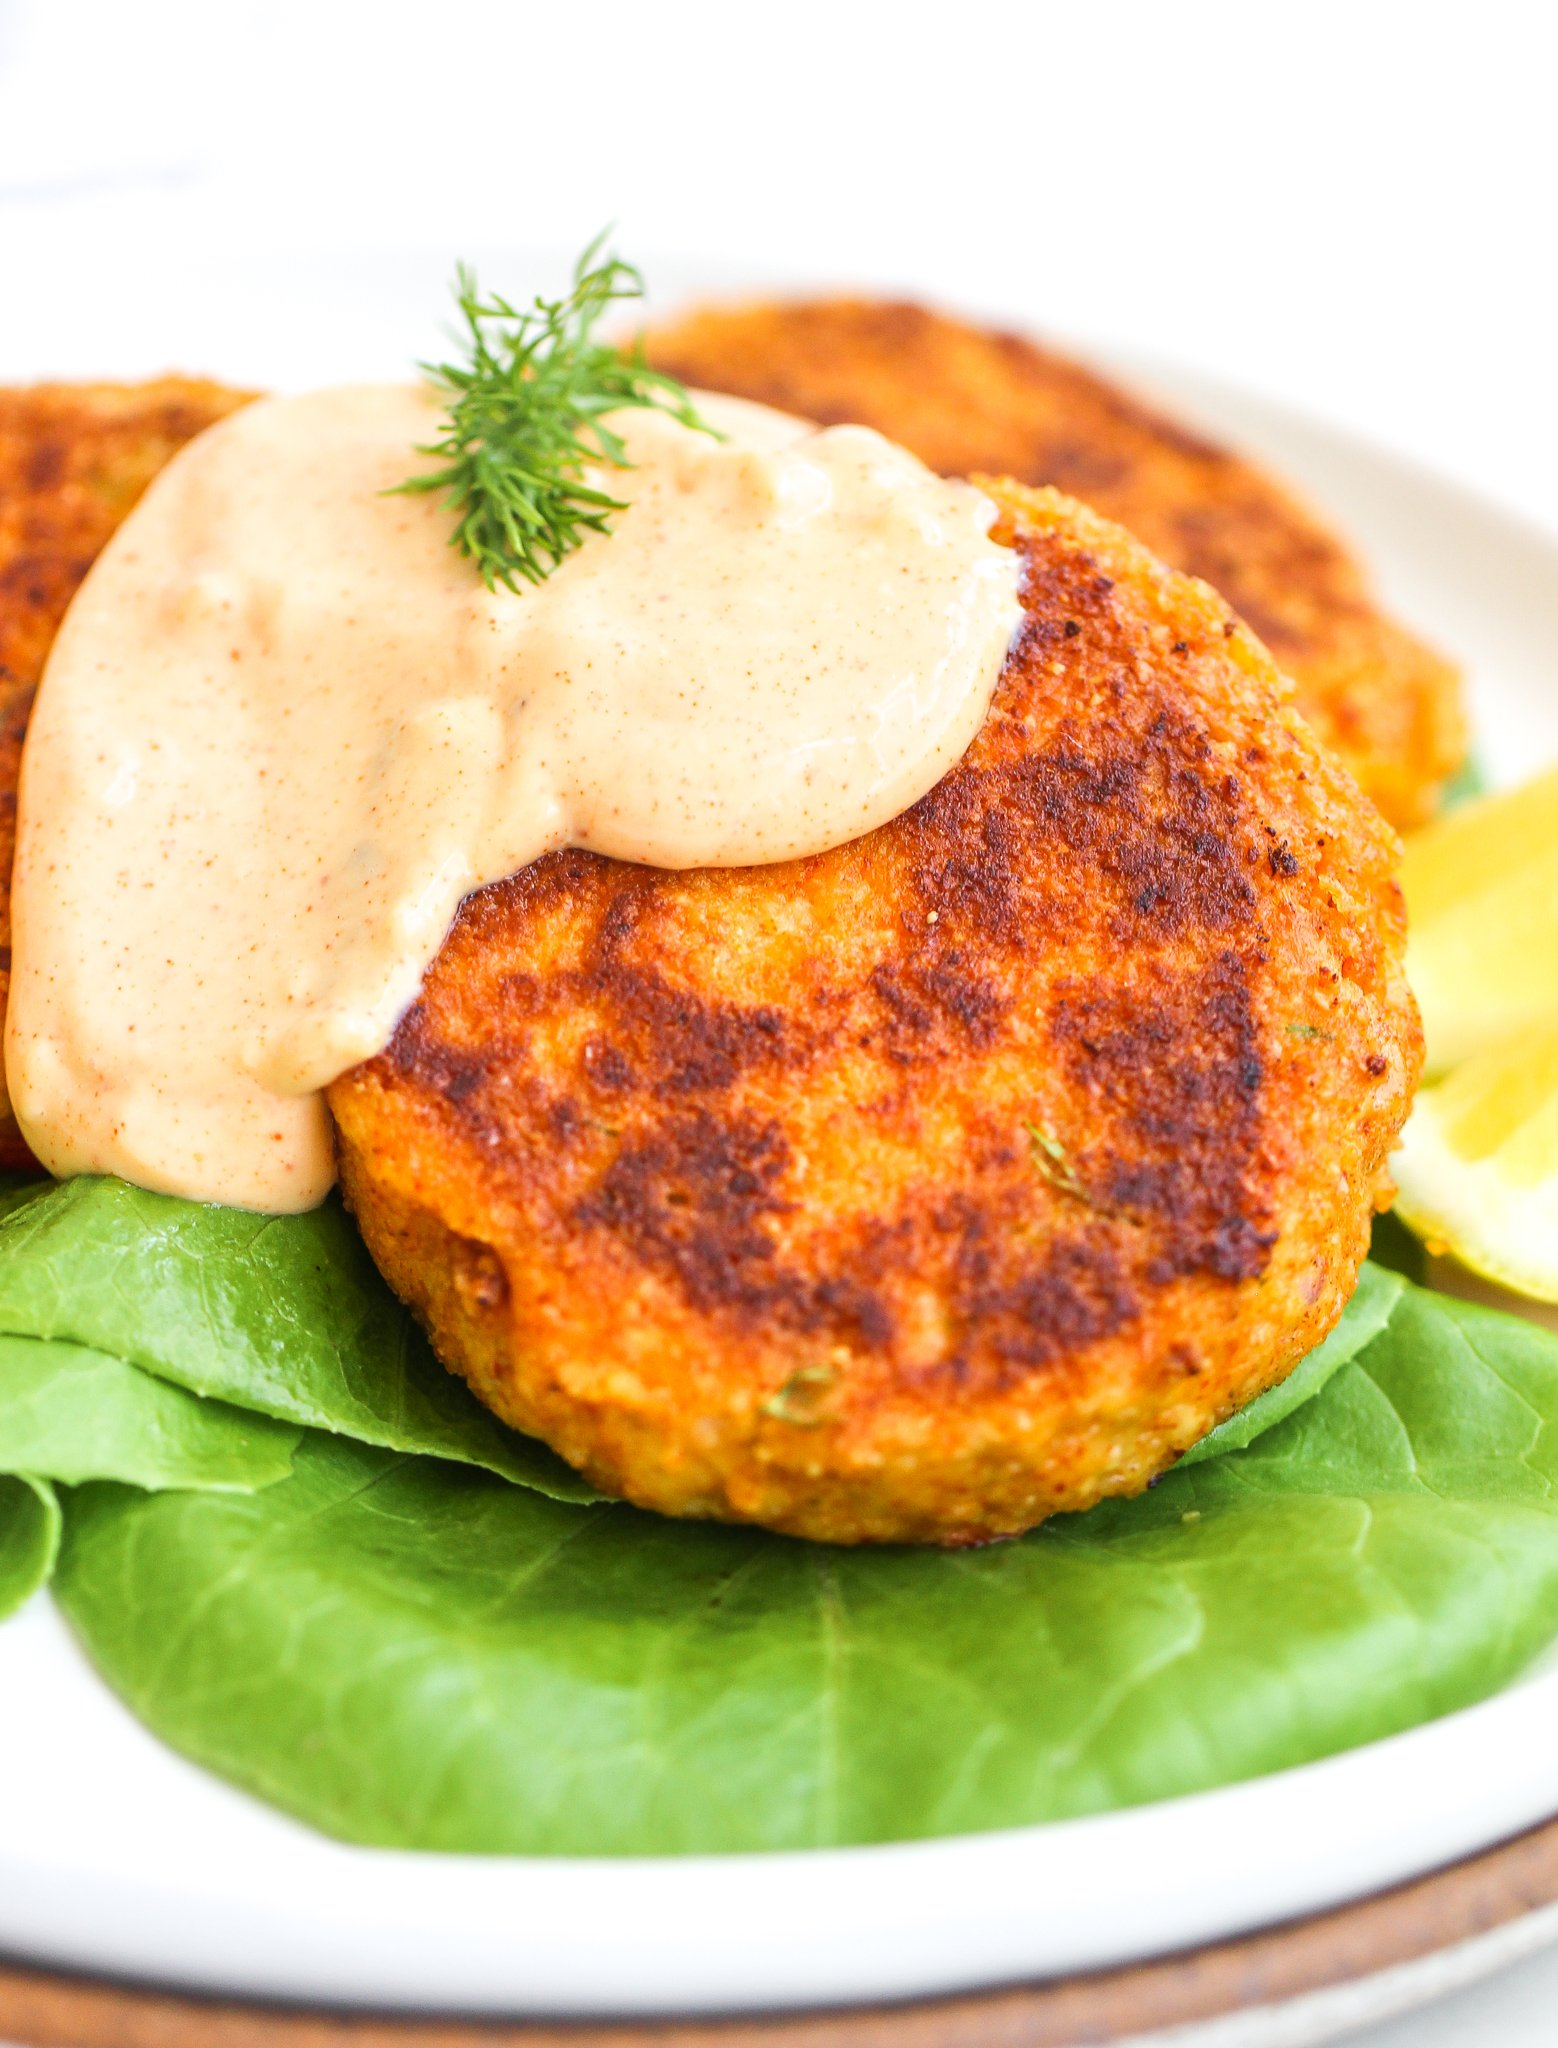 spicy garlic aioli drizzled over tuna cakes topped with fresh dill. The tuna cakes are stacked on top of a bed of butter lettuce with lemon wedges on the side